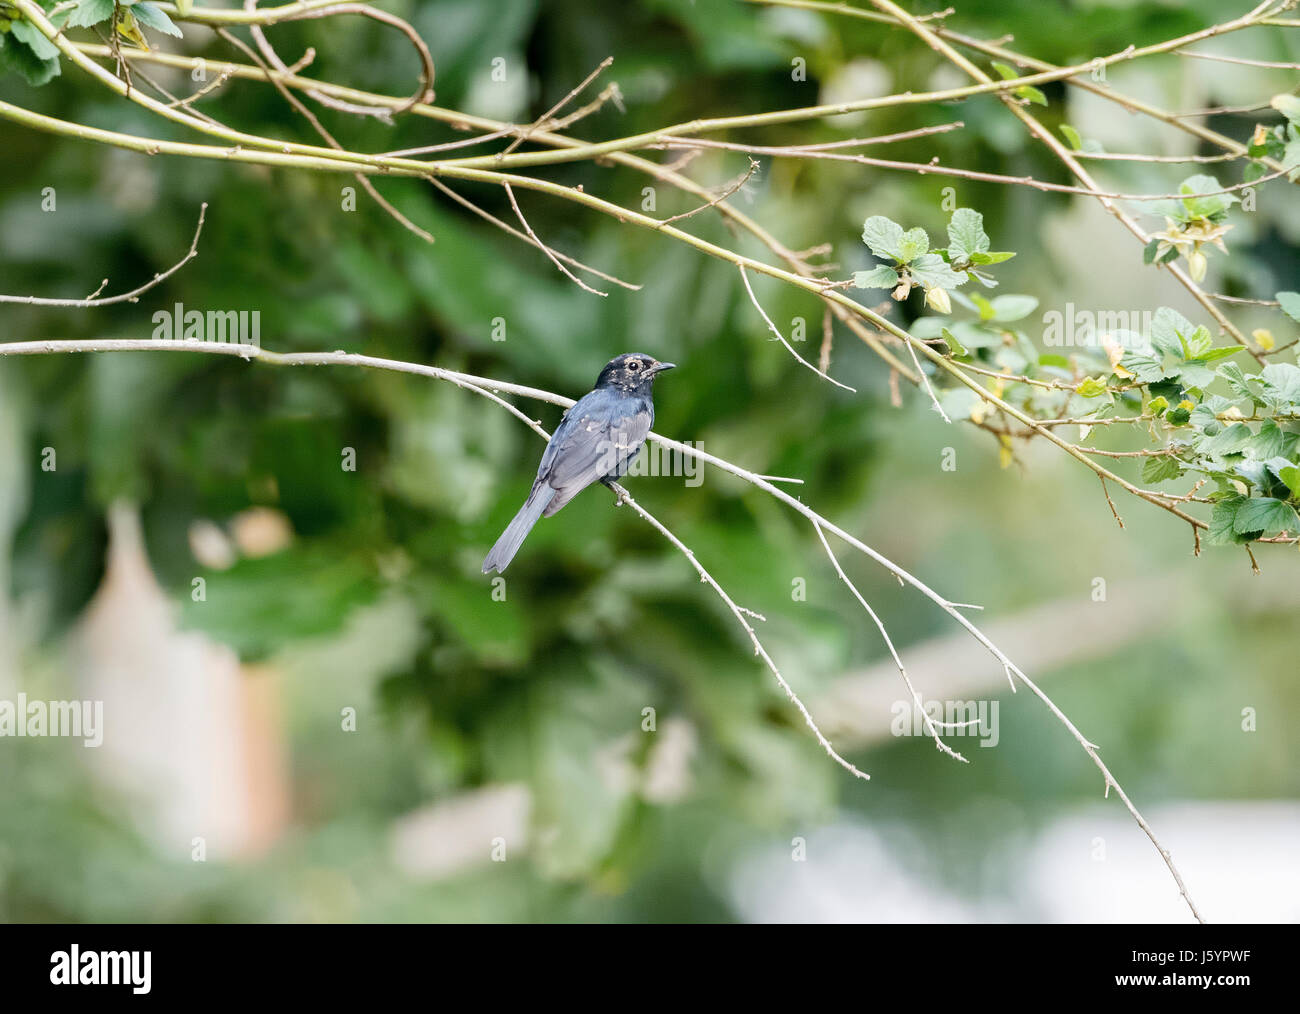 Southern Black Flycatcher (Melaenornis pammelaina) Perched on a Branch in Northern Tanzania - Stock Image